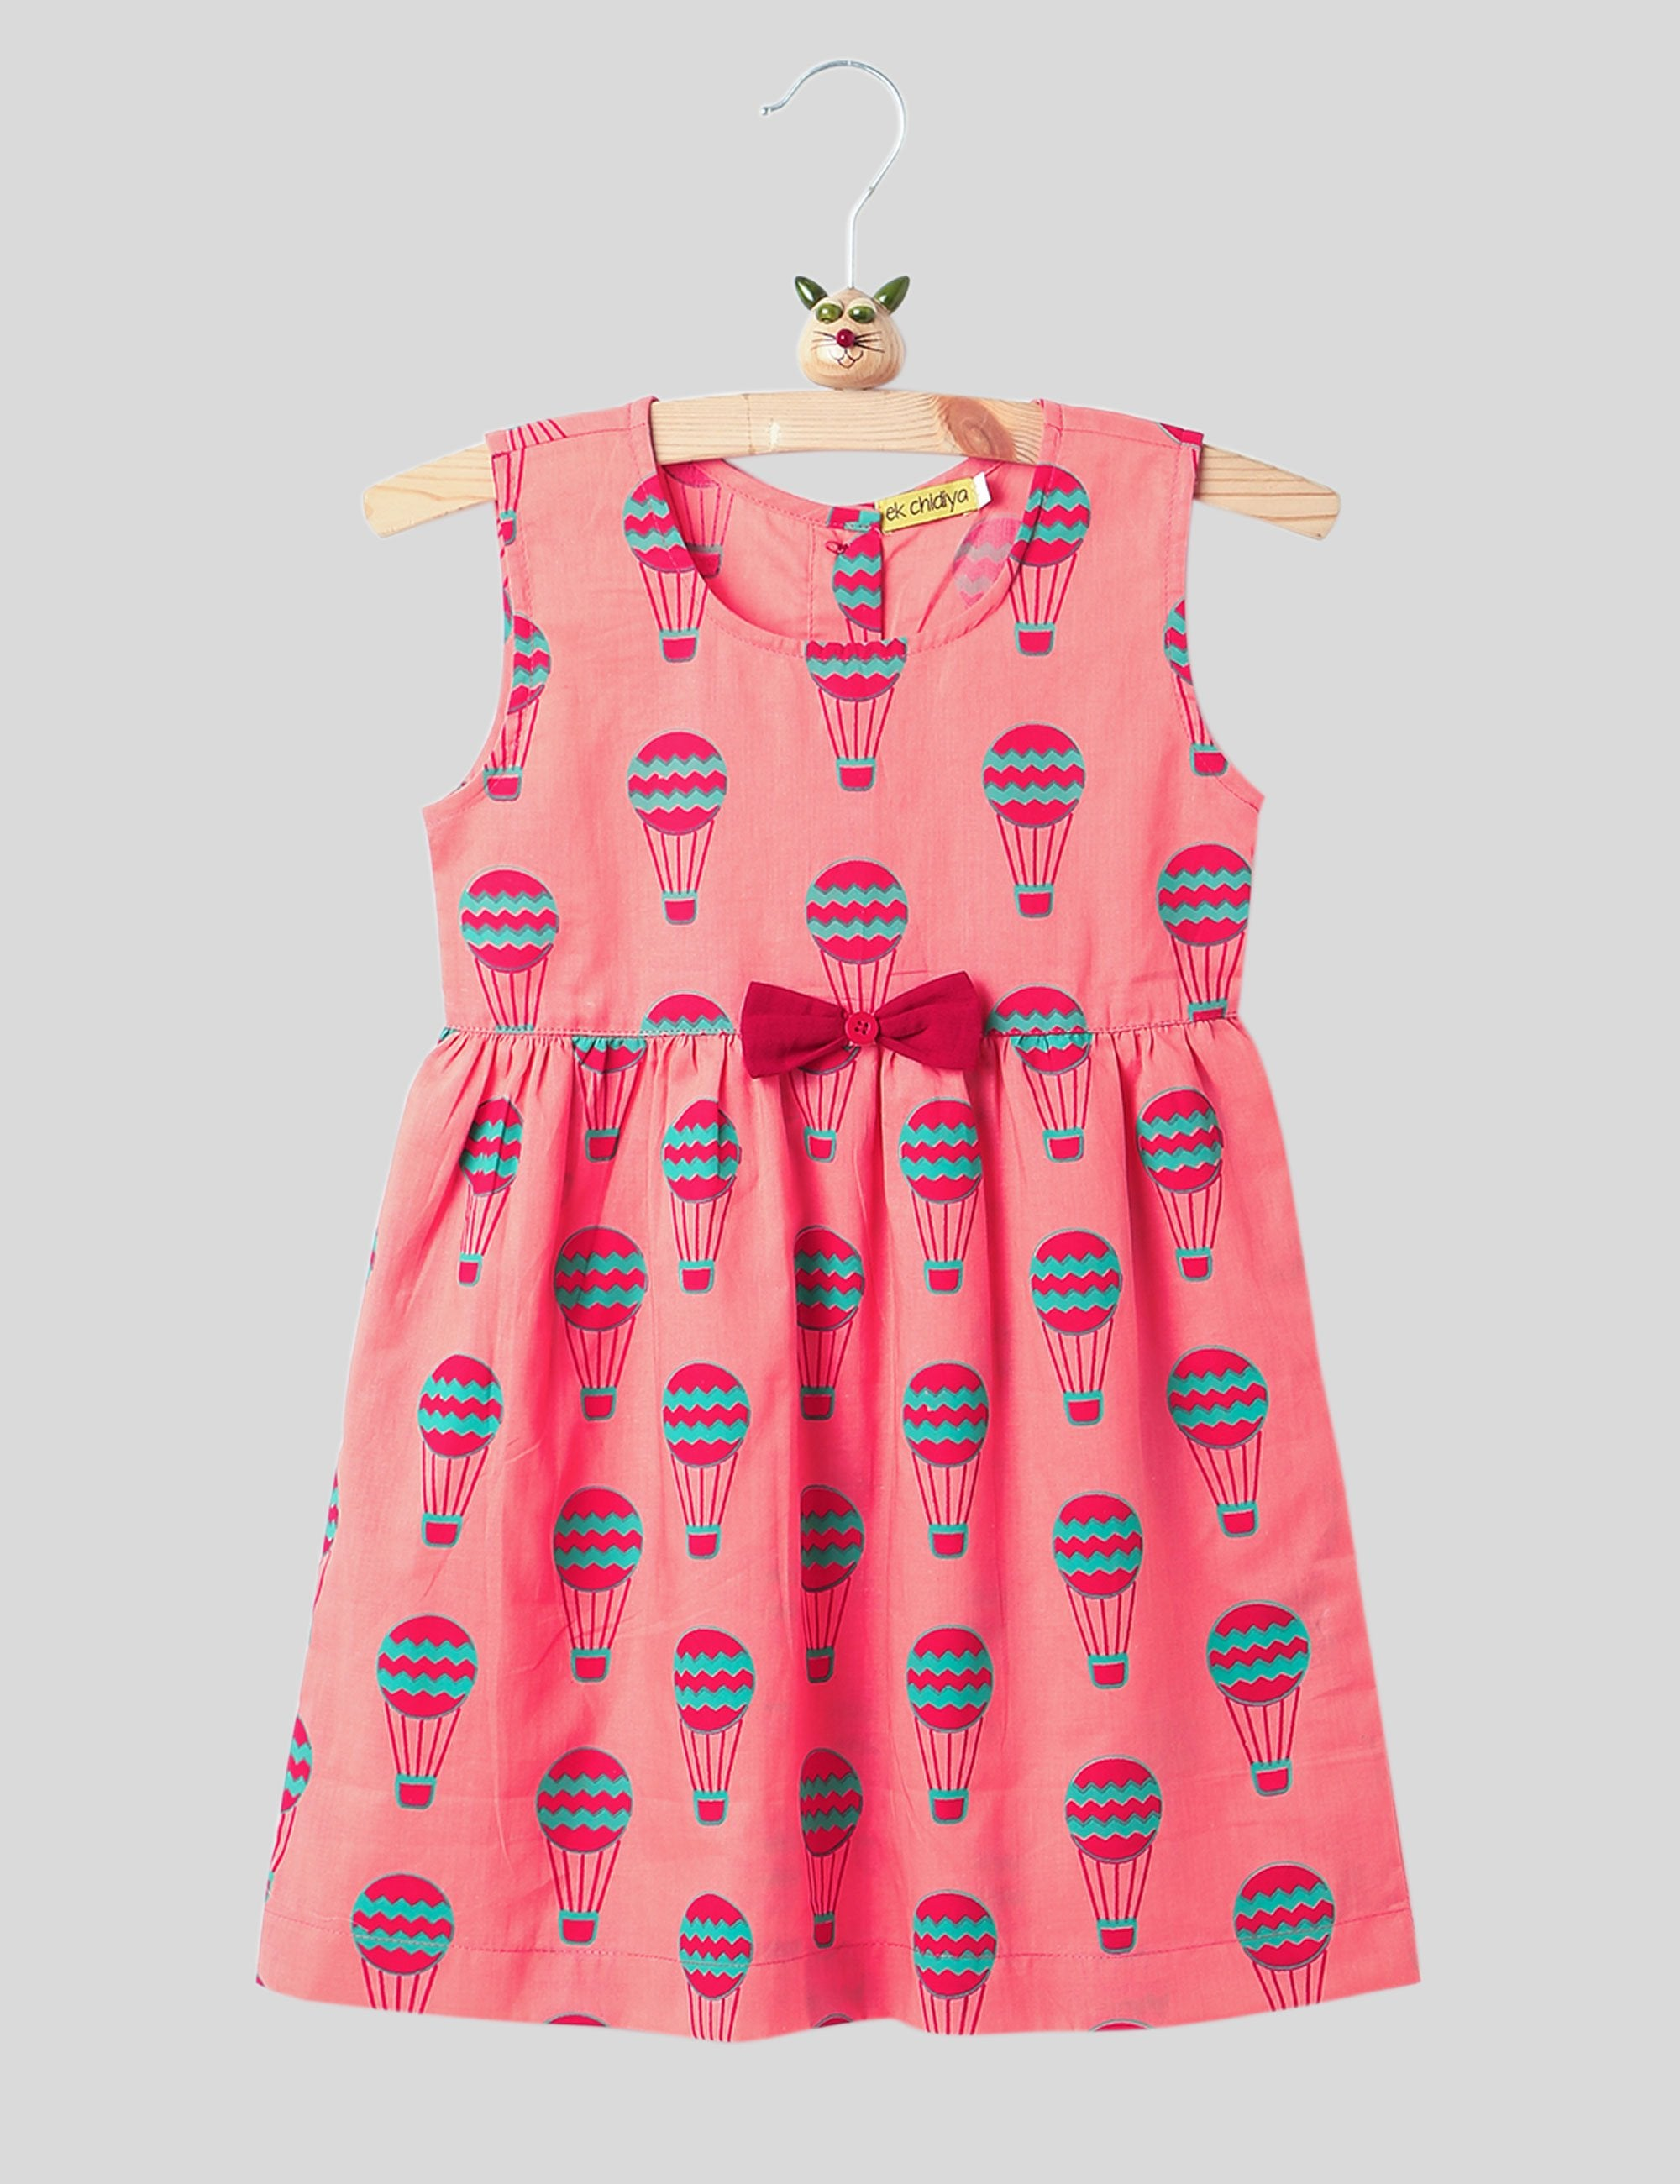 Printed Summer Frock In Peach and Blue Colour for Girls